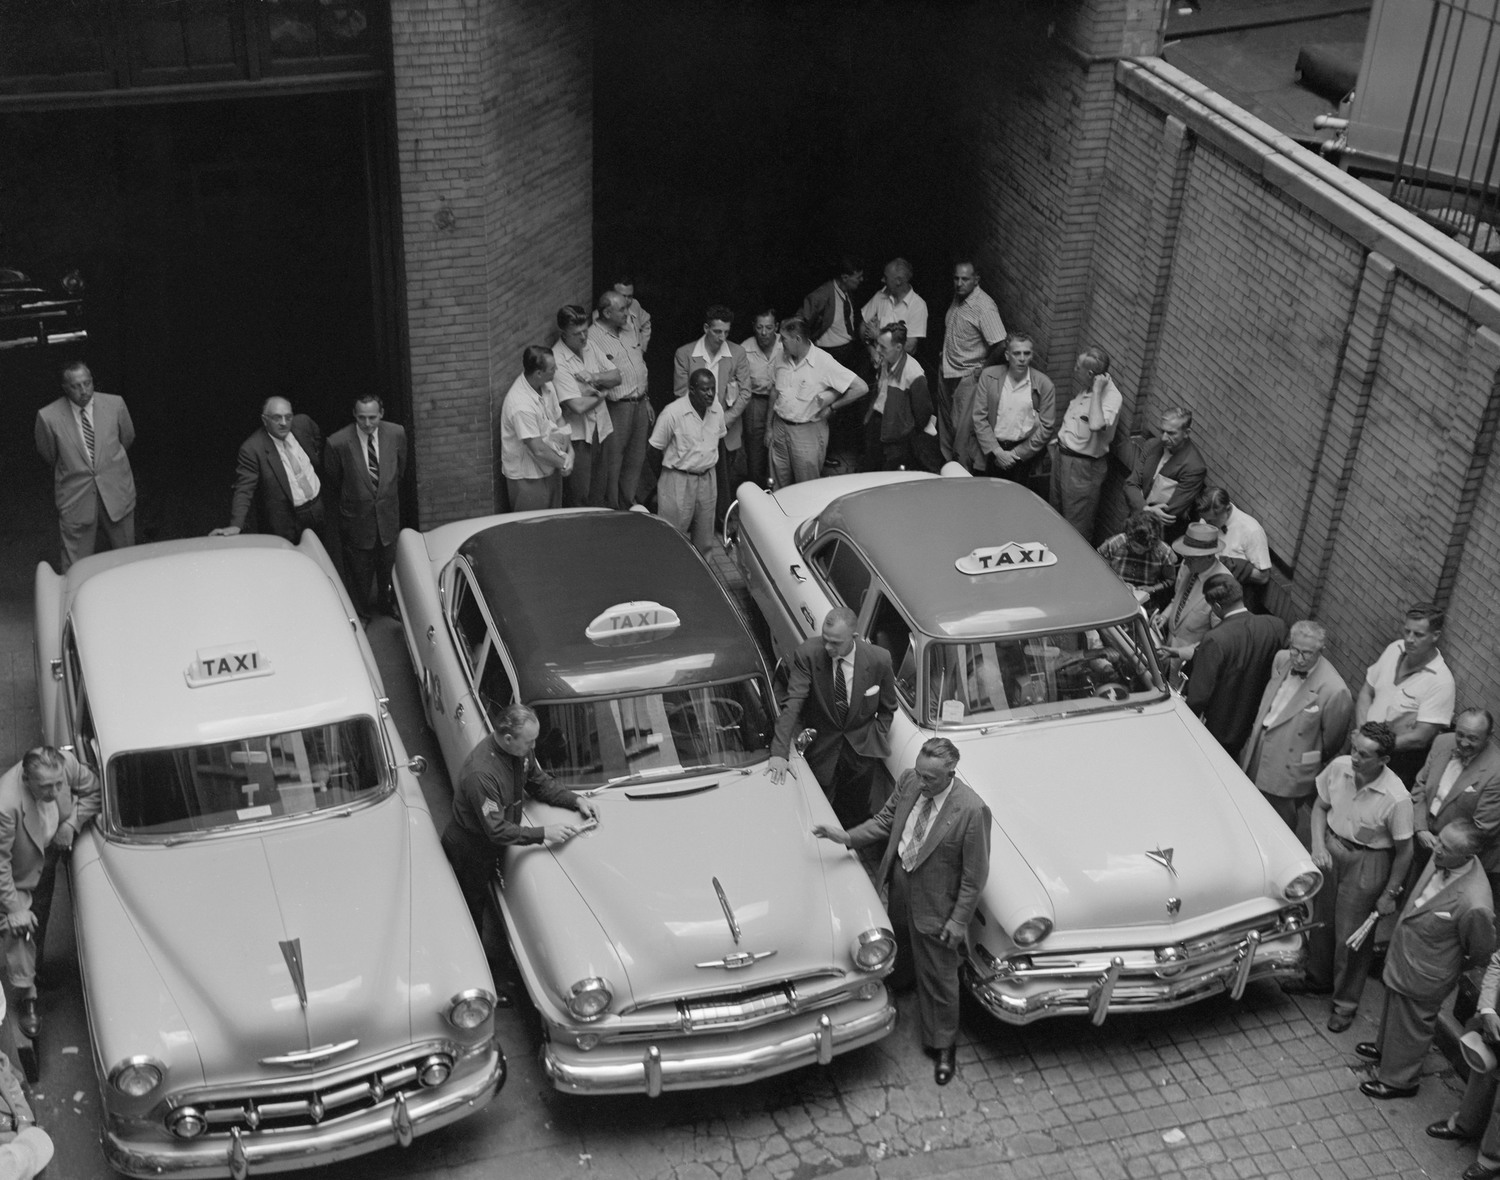 Representative models of the three makes of autos which meet the new specifications for service as New York taxi cabs get a going-over by officials at the Police Division of Licenses Headquarters, July 15, 1954. Left to right, the new stock model small taxis expected to be on the streets by July 16th are: A Chevrolet, a Plymouth, and a Ford.